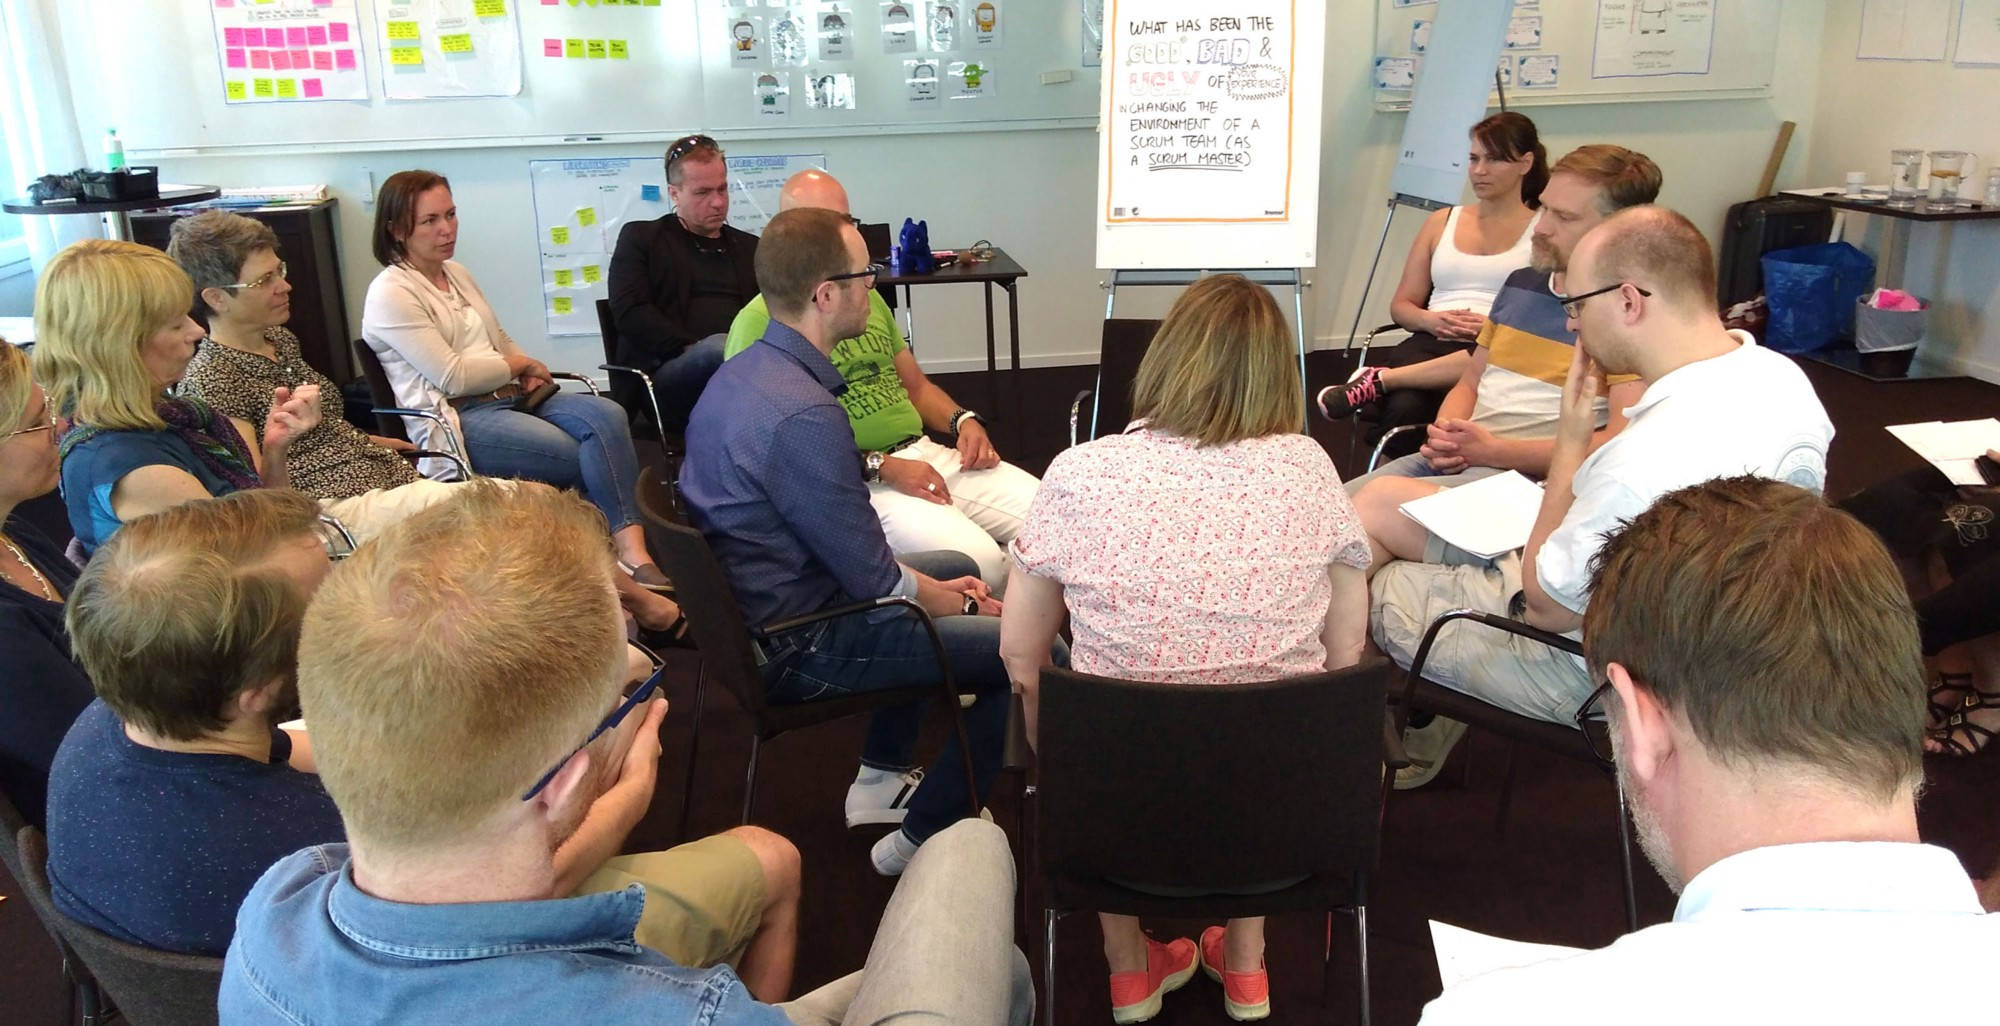 A UX Fishbowl in full-swing.